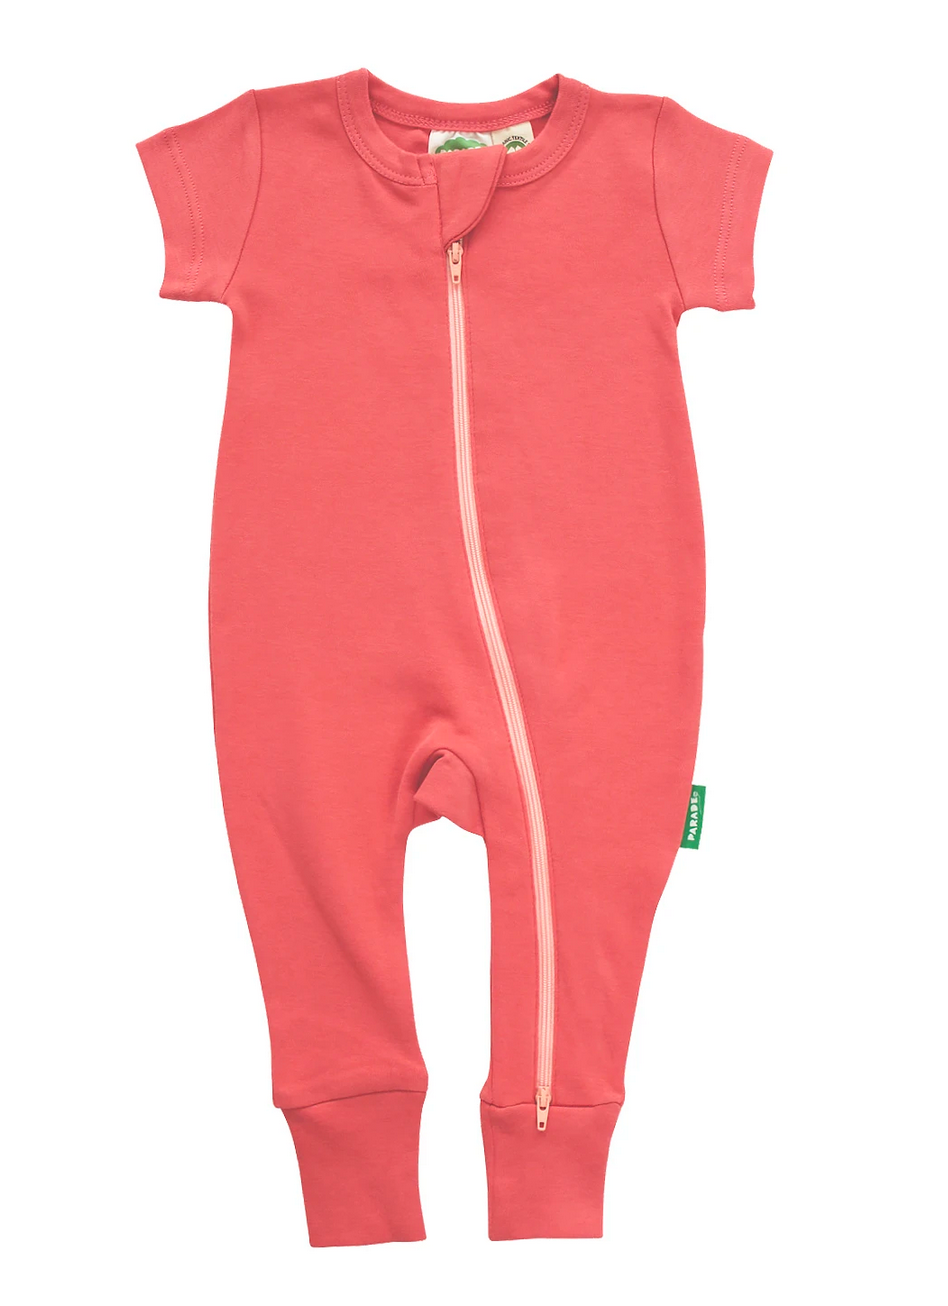 Essential Basic 2-Way Zippy Romper Apricot